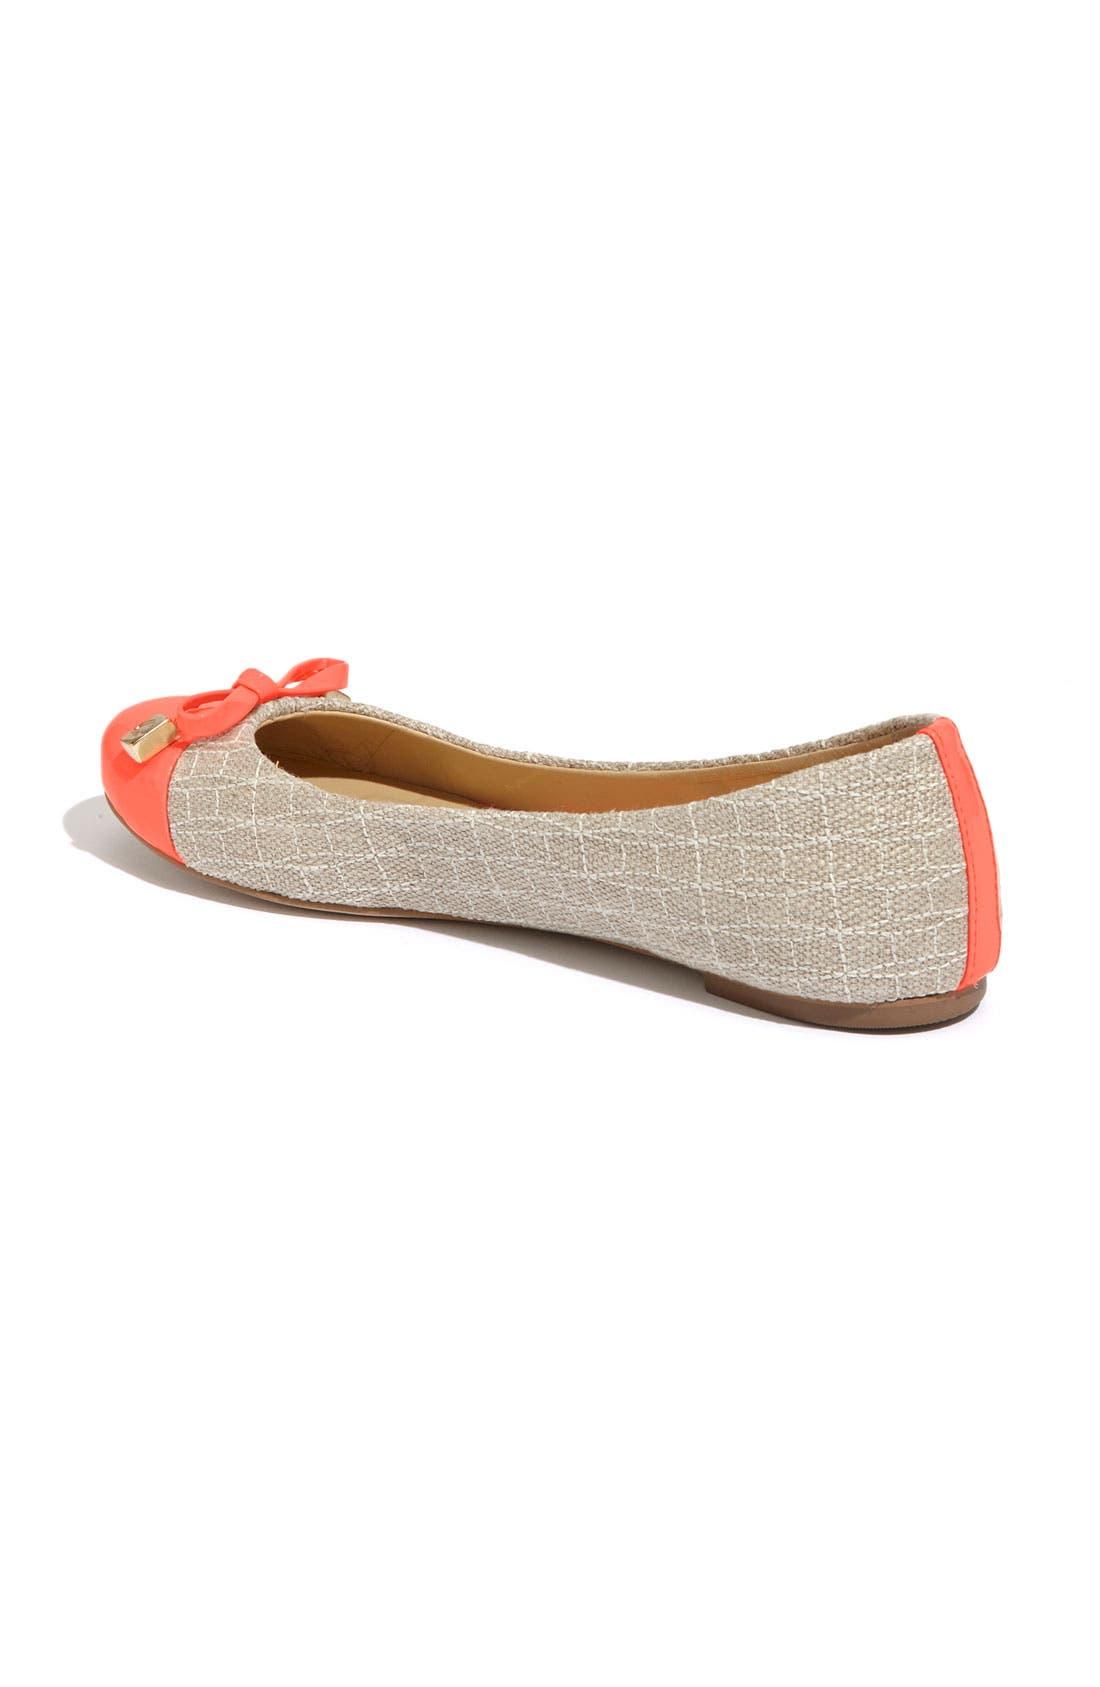 Alternate Image 2  - kate spade new york 'heather' flat